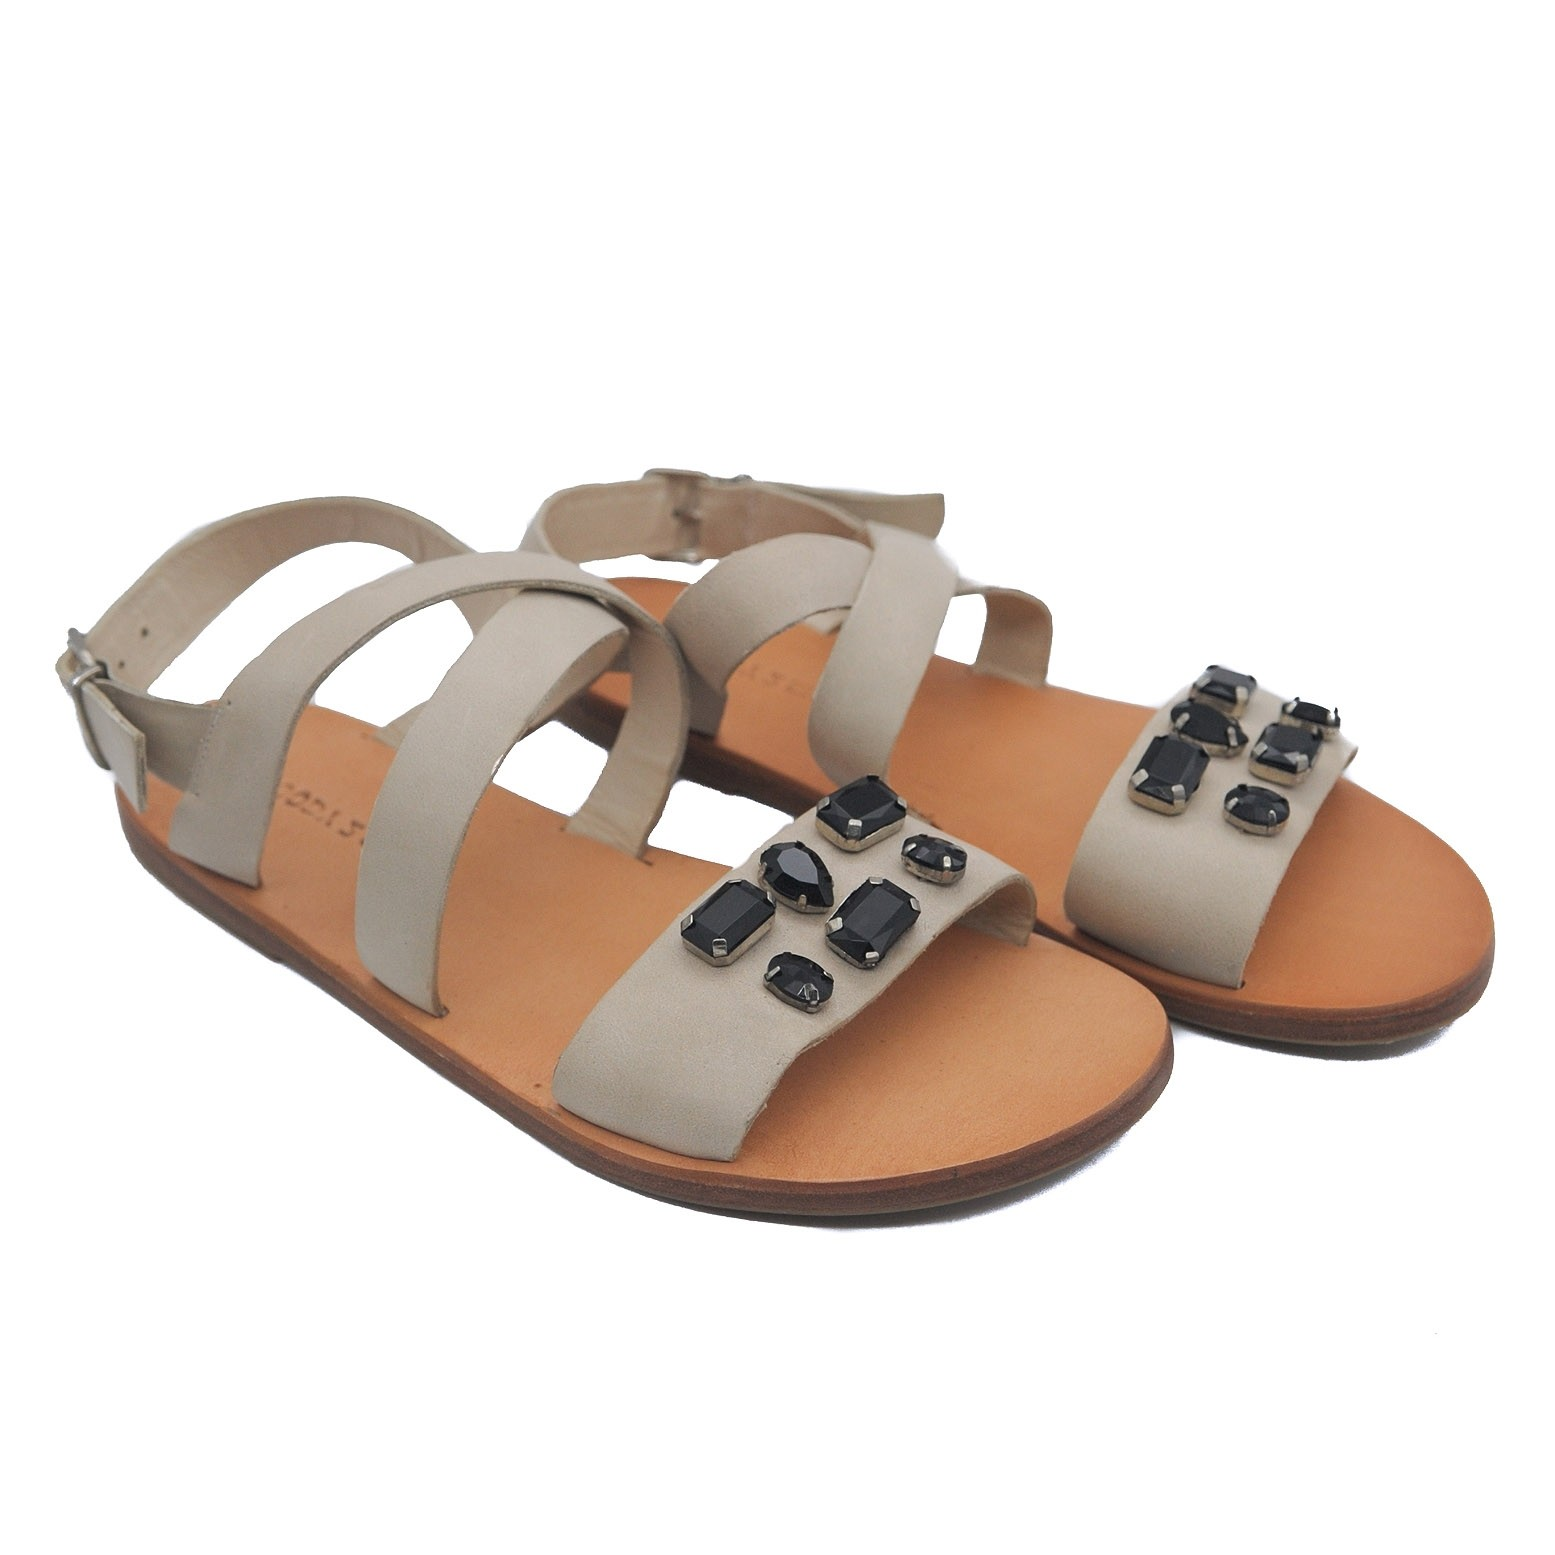 Goody2Shoes Flat Sandals for Ladies in Cream Leather with Crossover Straps and Jewels